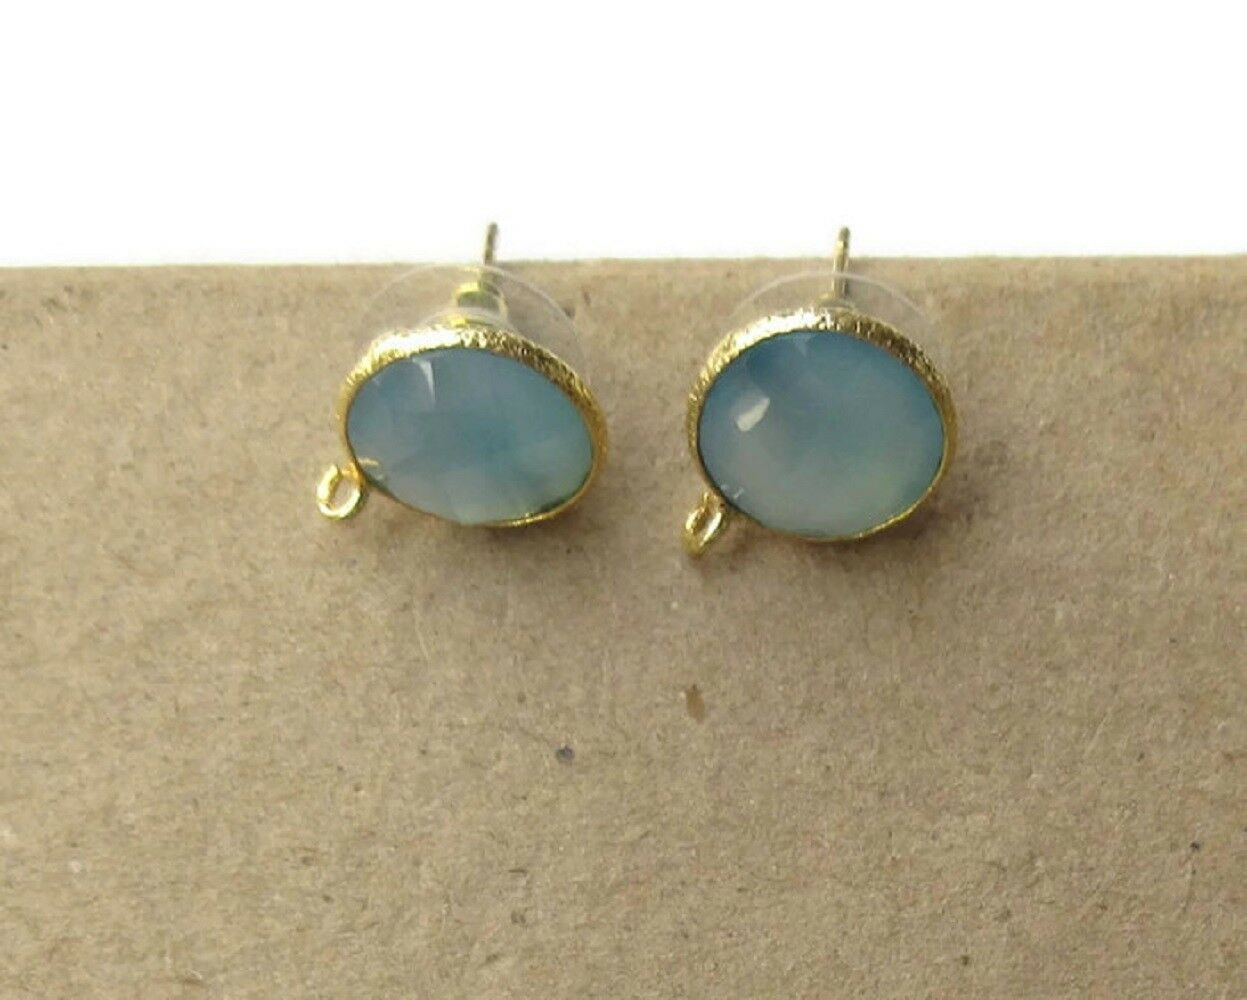 5 Pairs bluee Chalcedony Stud Earring Supplies Findings With Bail GDS1041 10